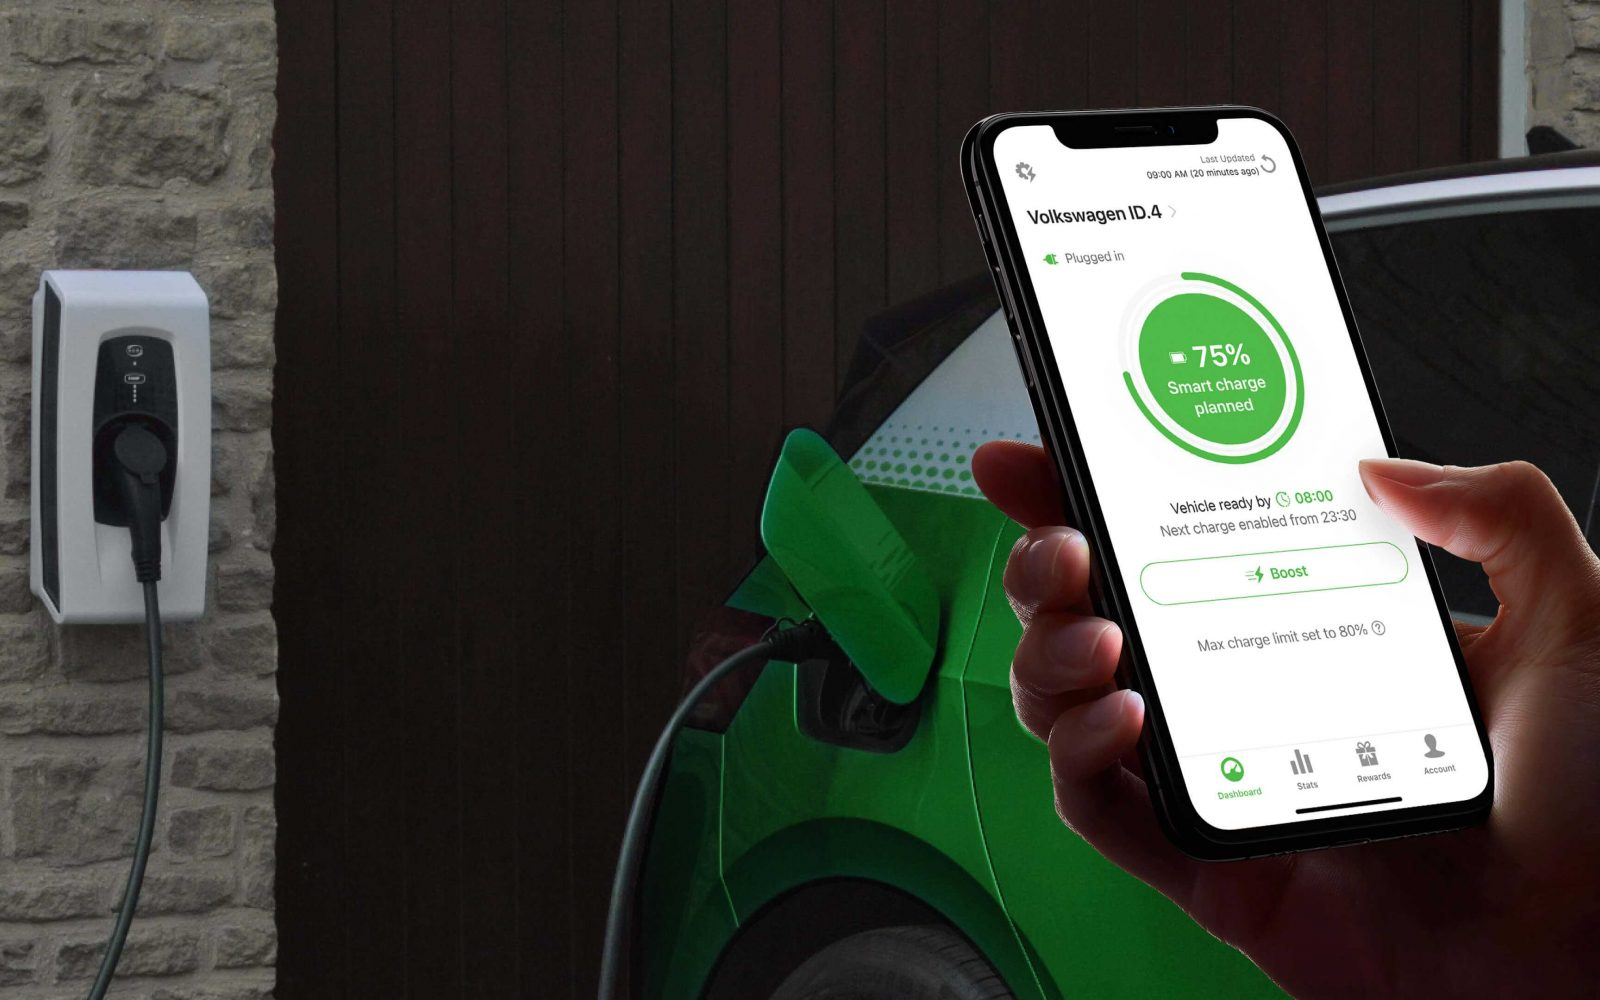 The Indra Smart Pioneer allows drivers to earn back rewards for their smart charging. Image: ev.energy